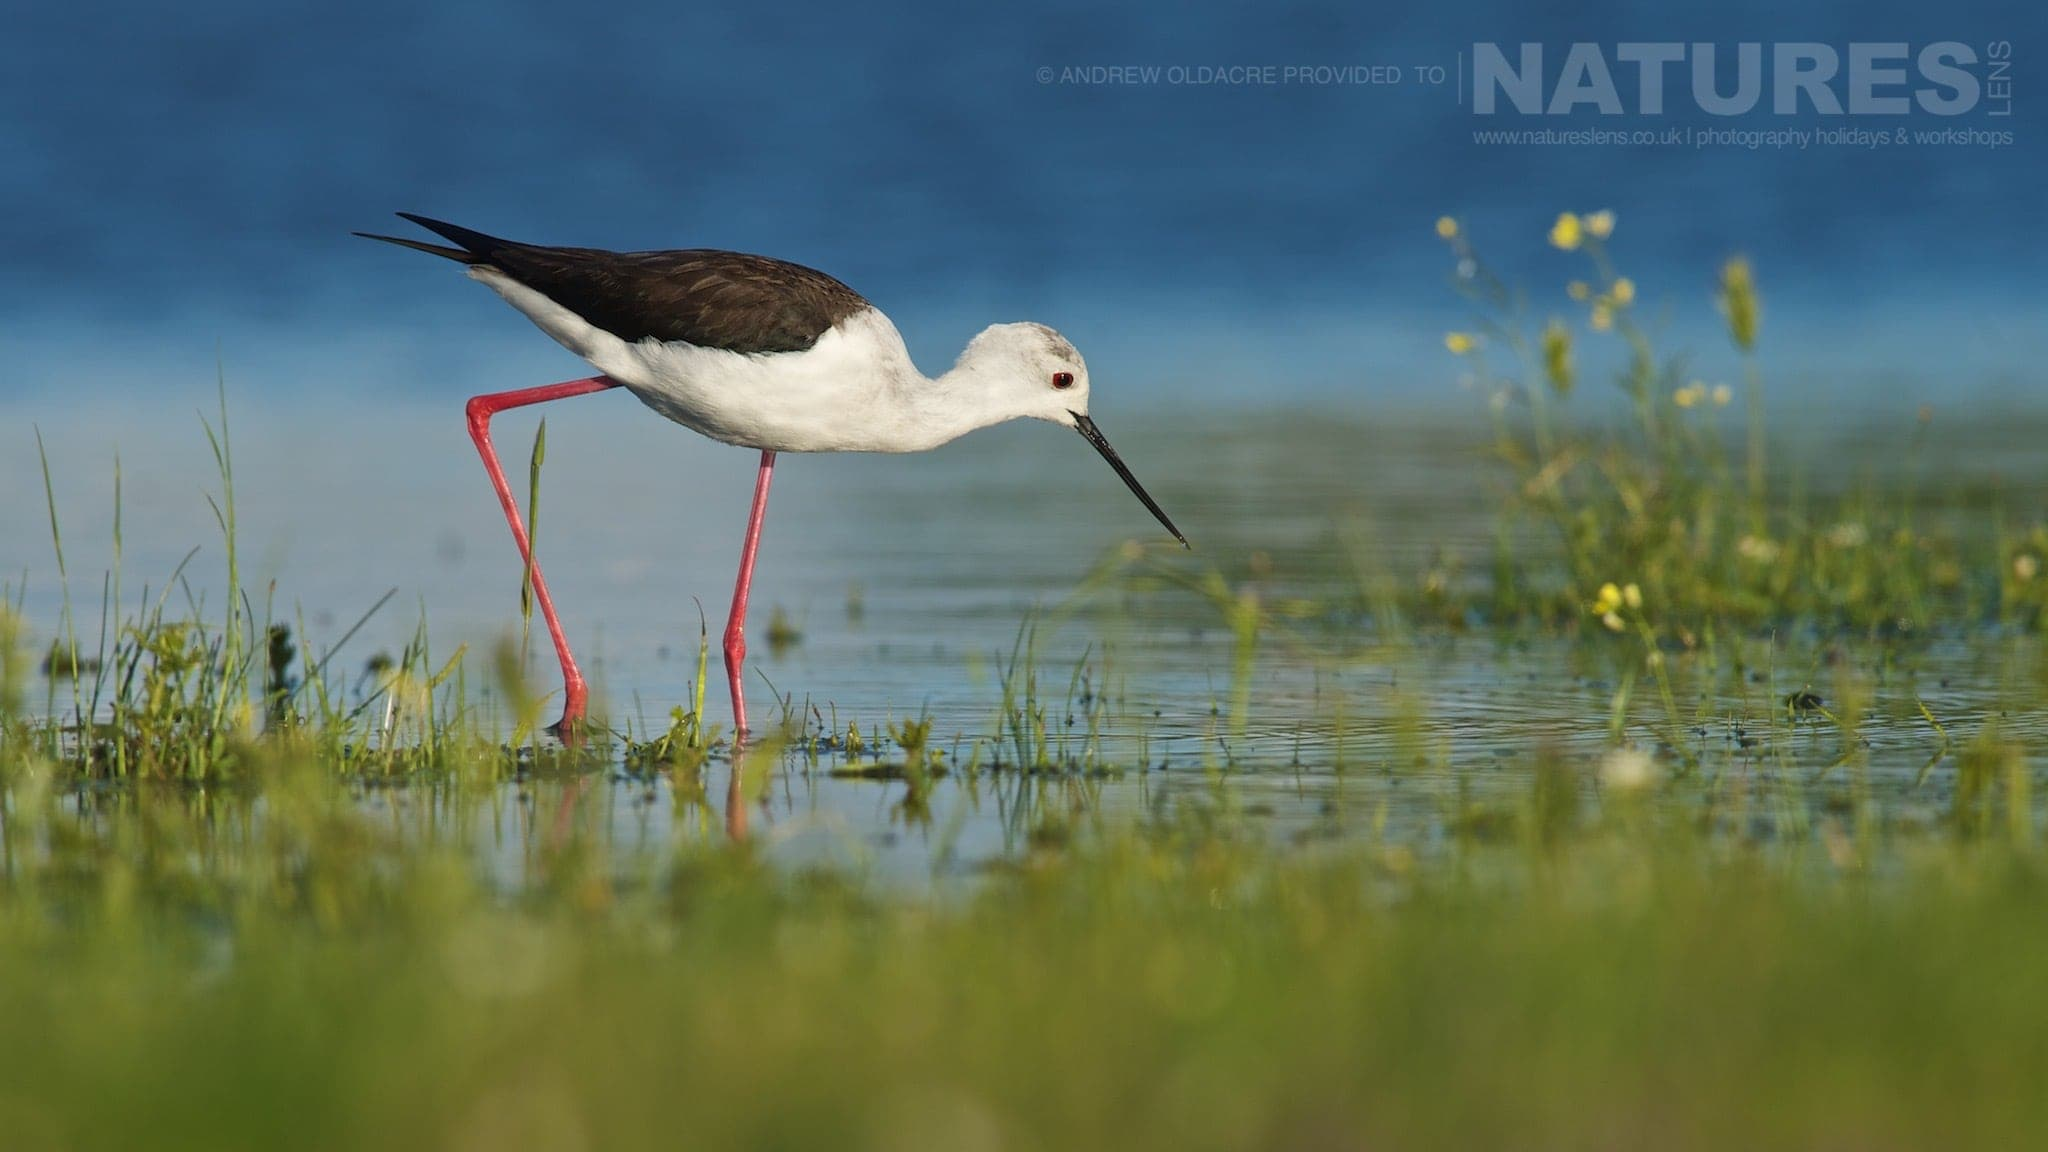 A Black Winged Stilt walks along the shoreline photographed from a lake-side hide - photographed on the NaturesLens Birds of Calera Photography Holiday